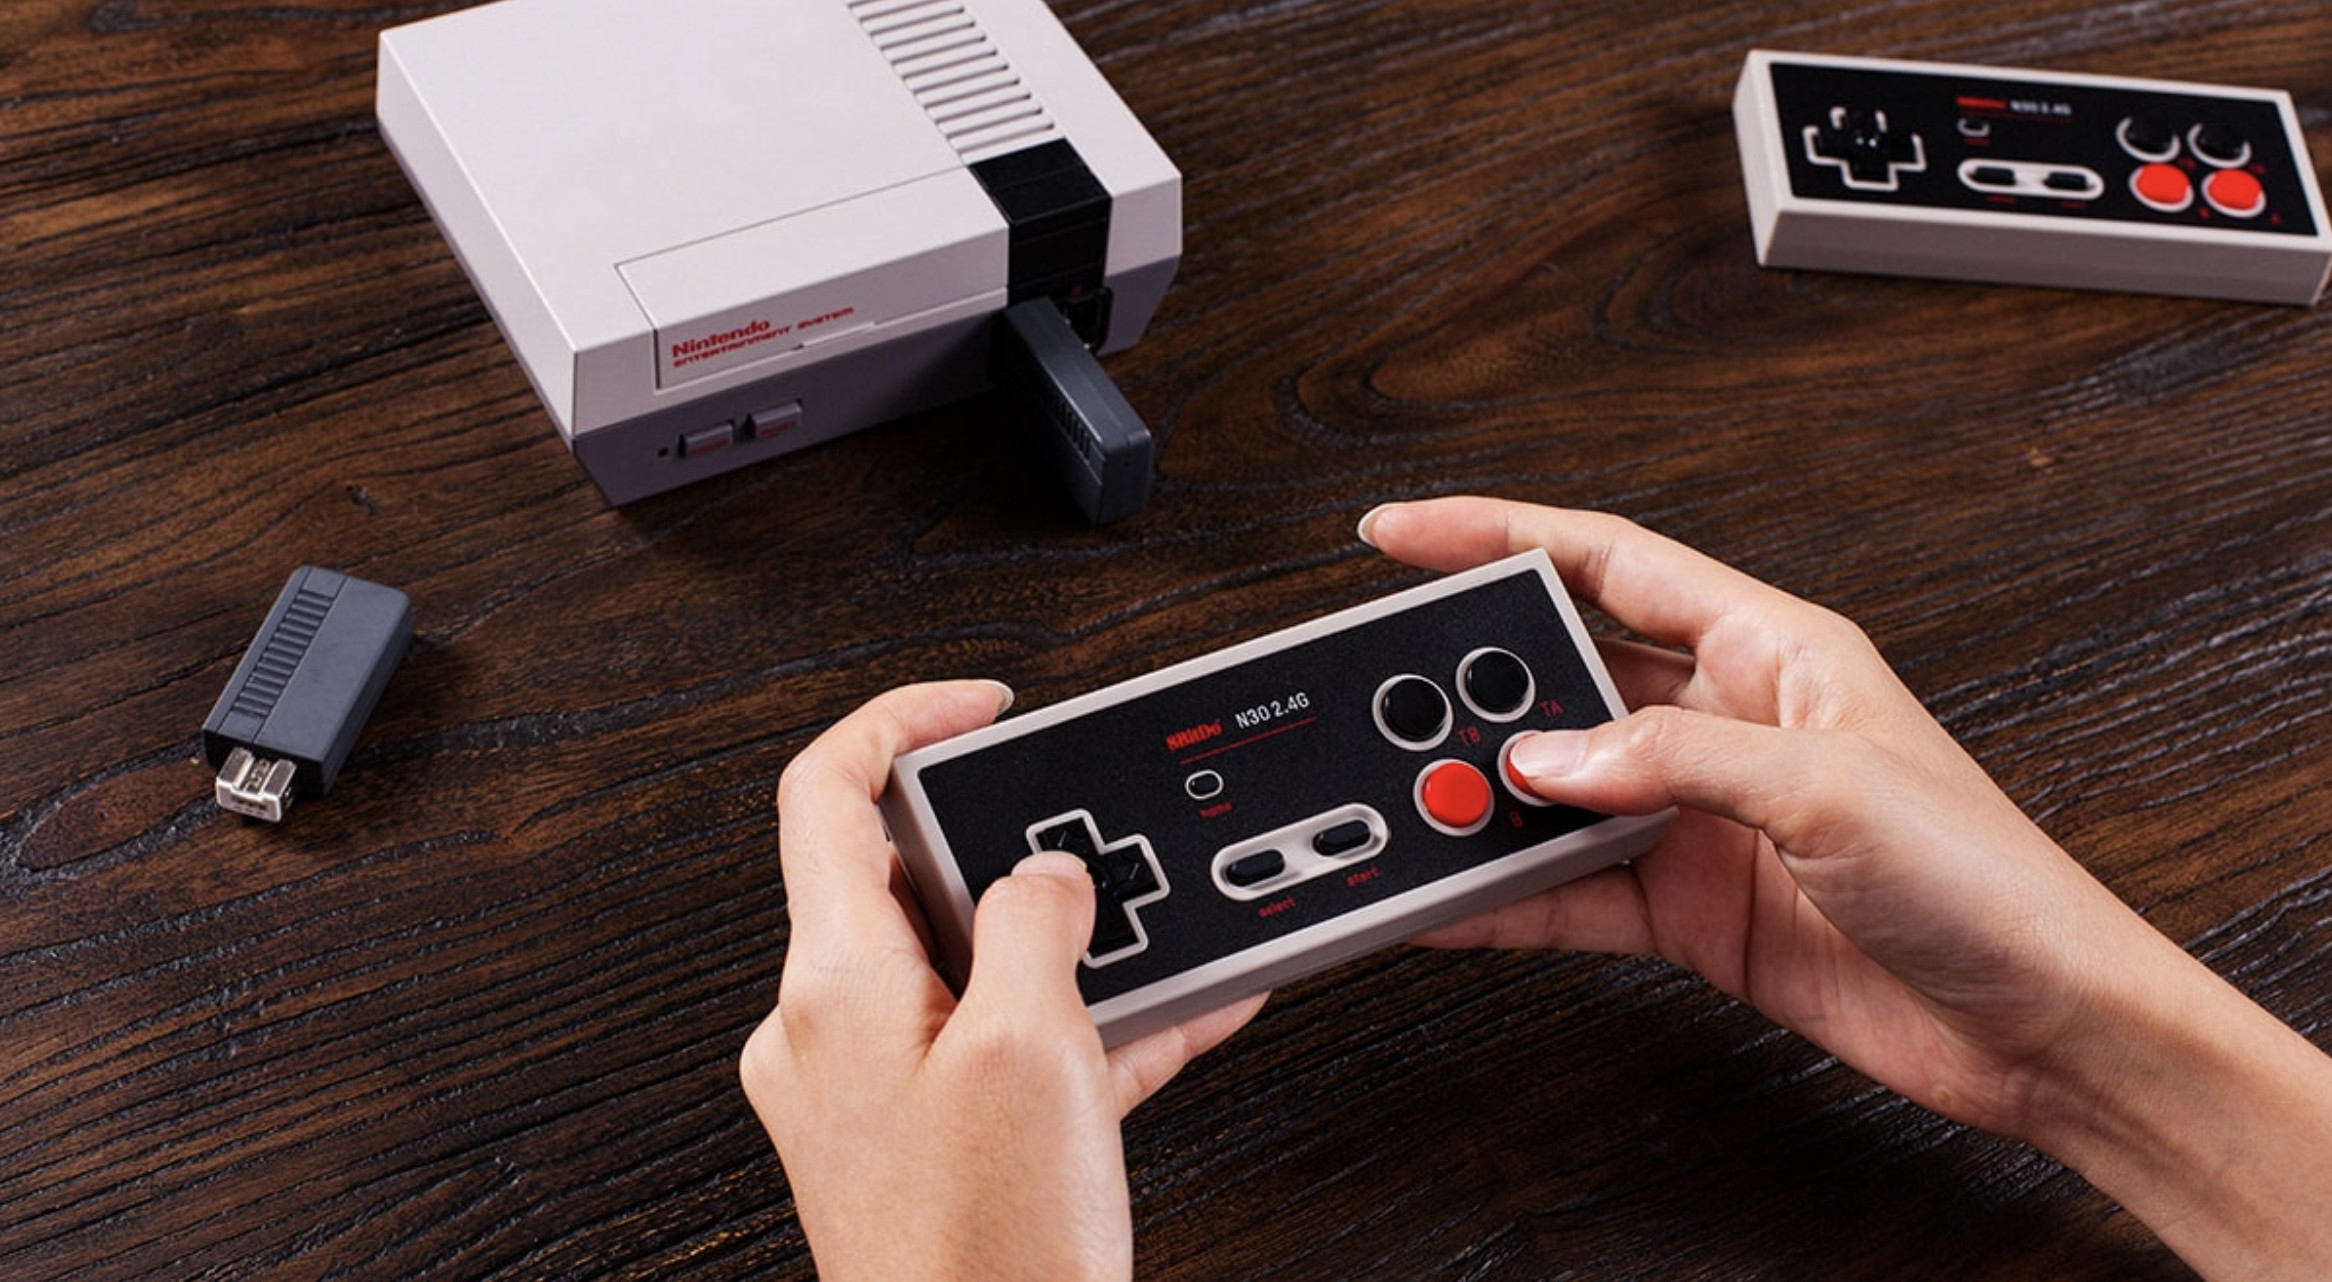 IT'S BACK! NES Classic Edition returns to stores